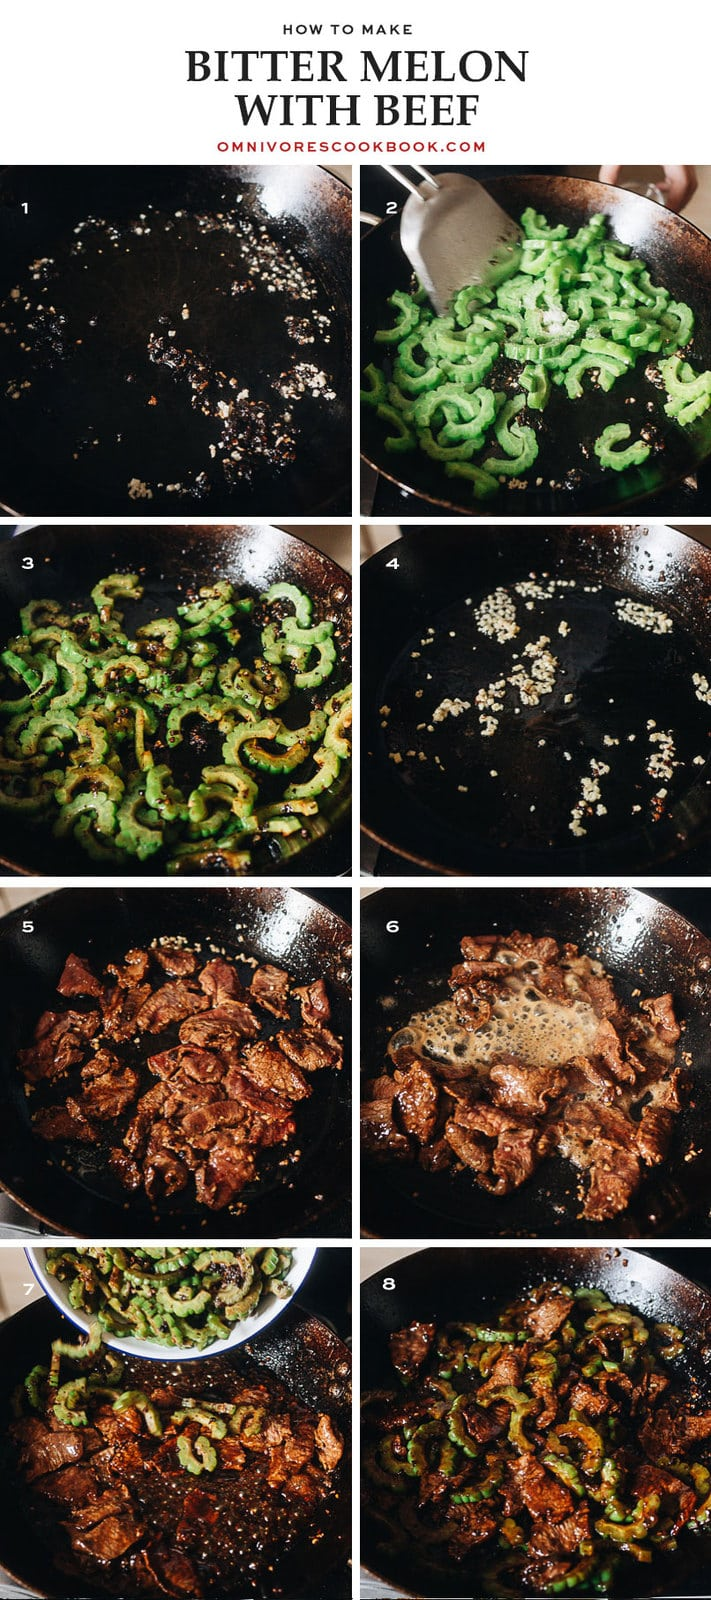 How to cook beef with bitter melon step-by-step